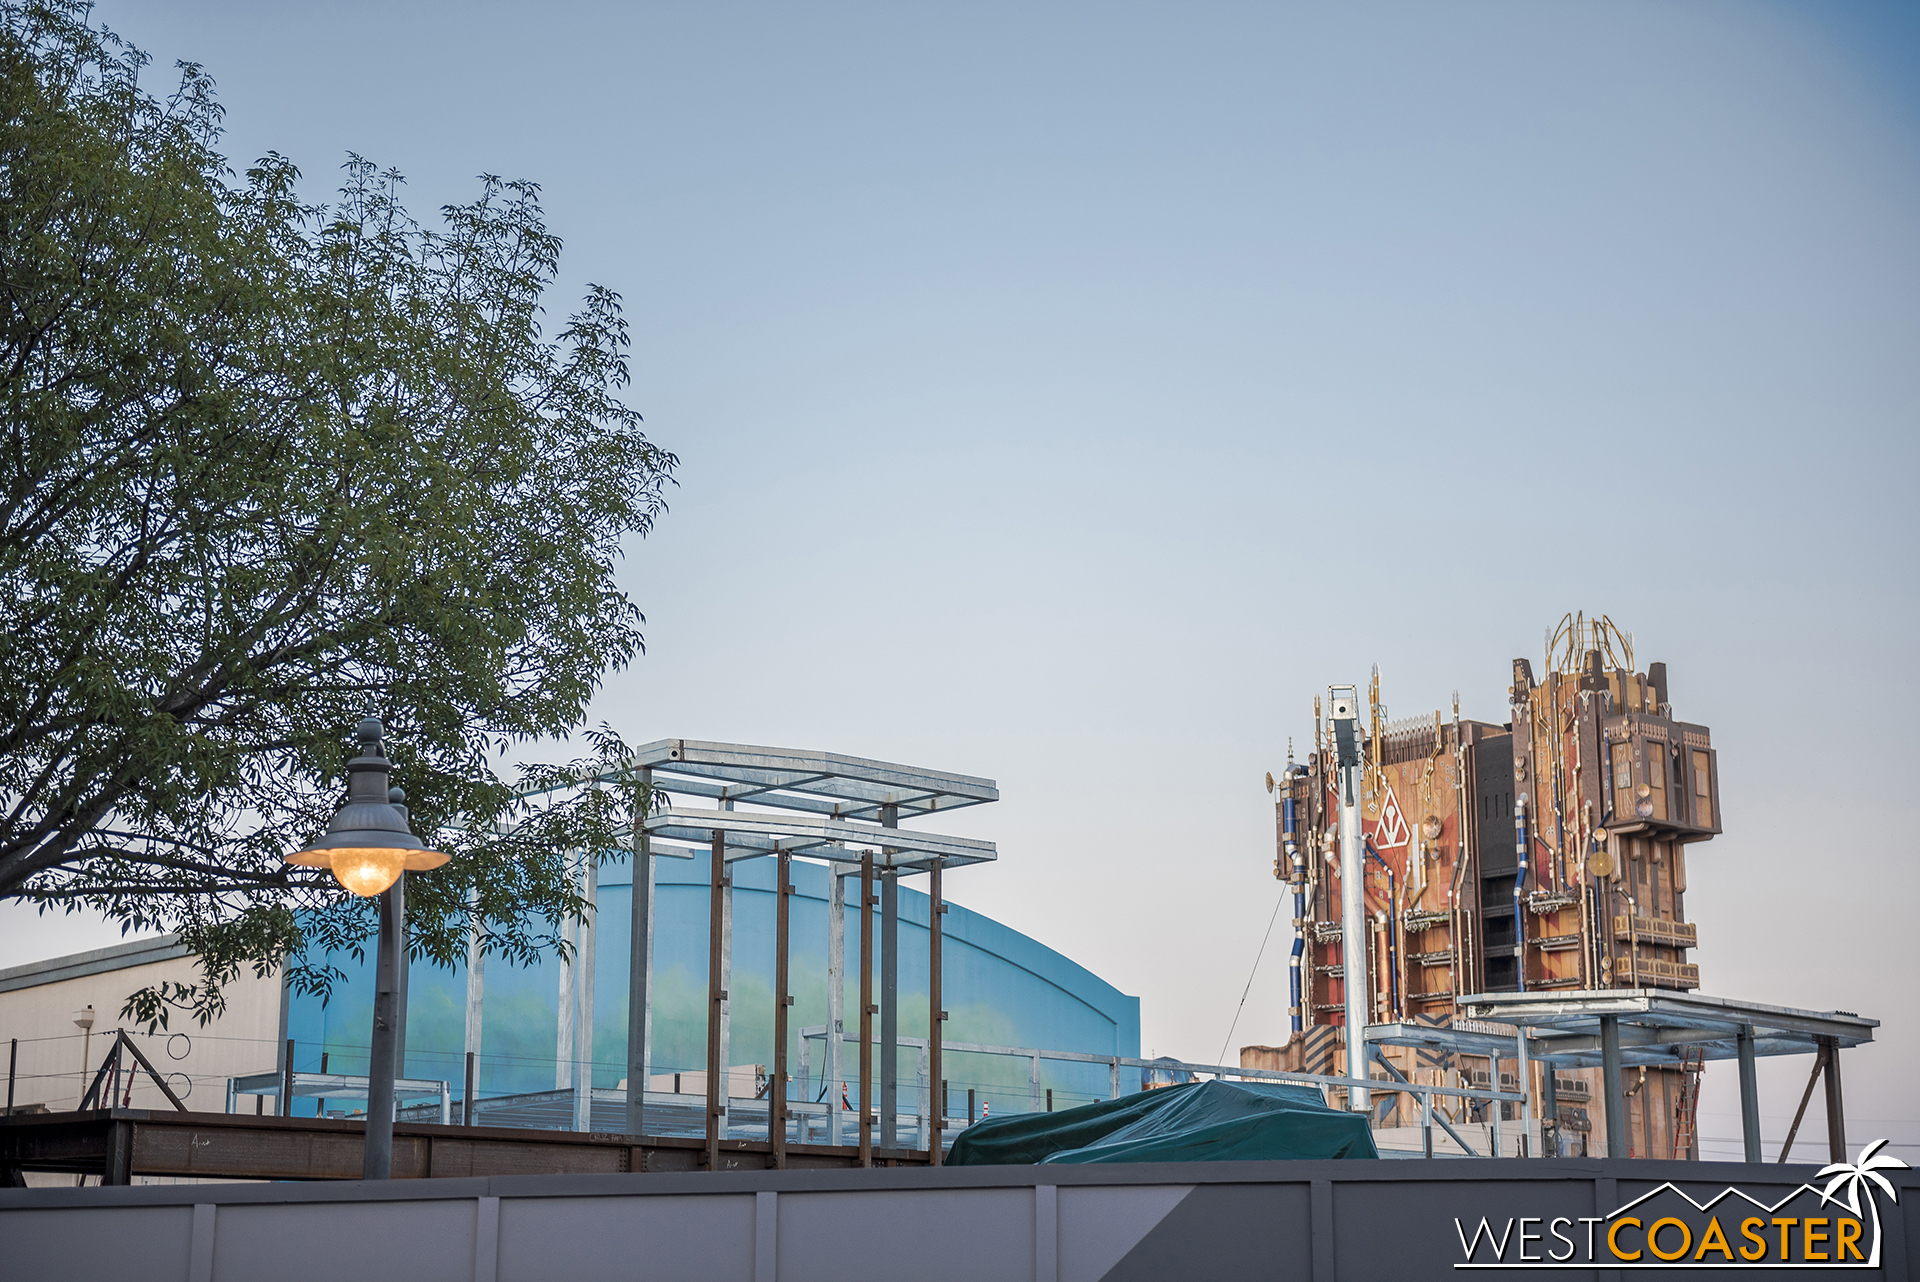 It's no longer a challenge to see Marvel Land construction progress over the work walls.